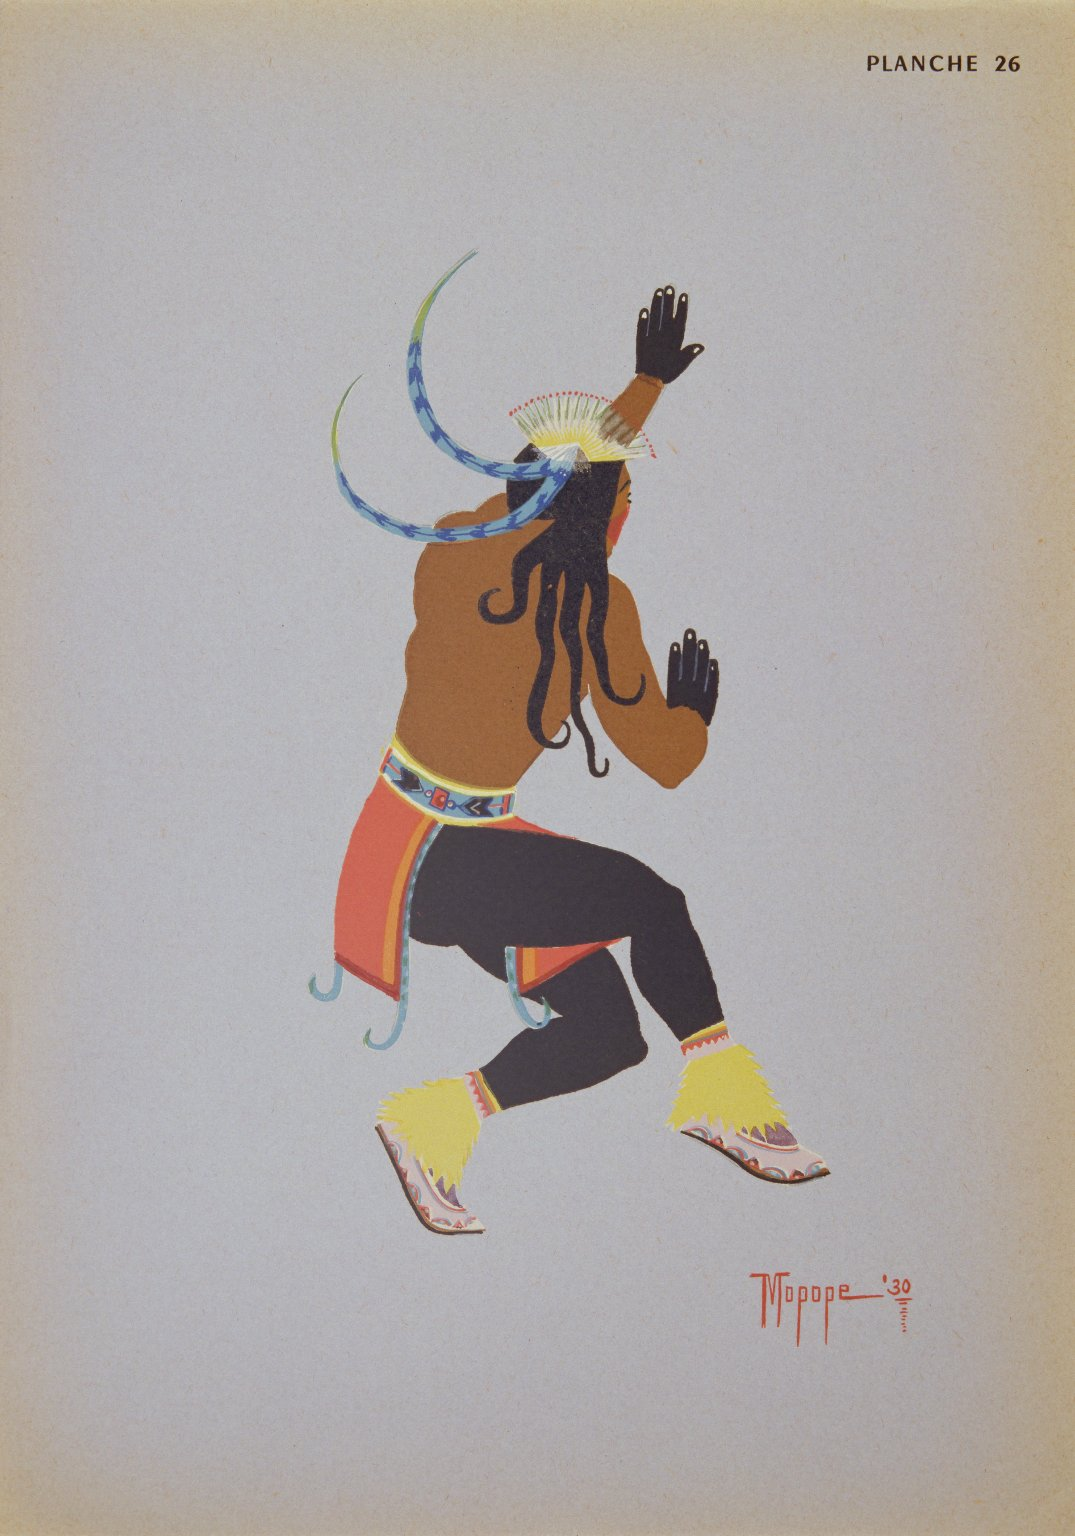 American Indian painters